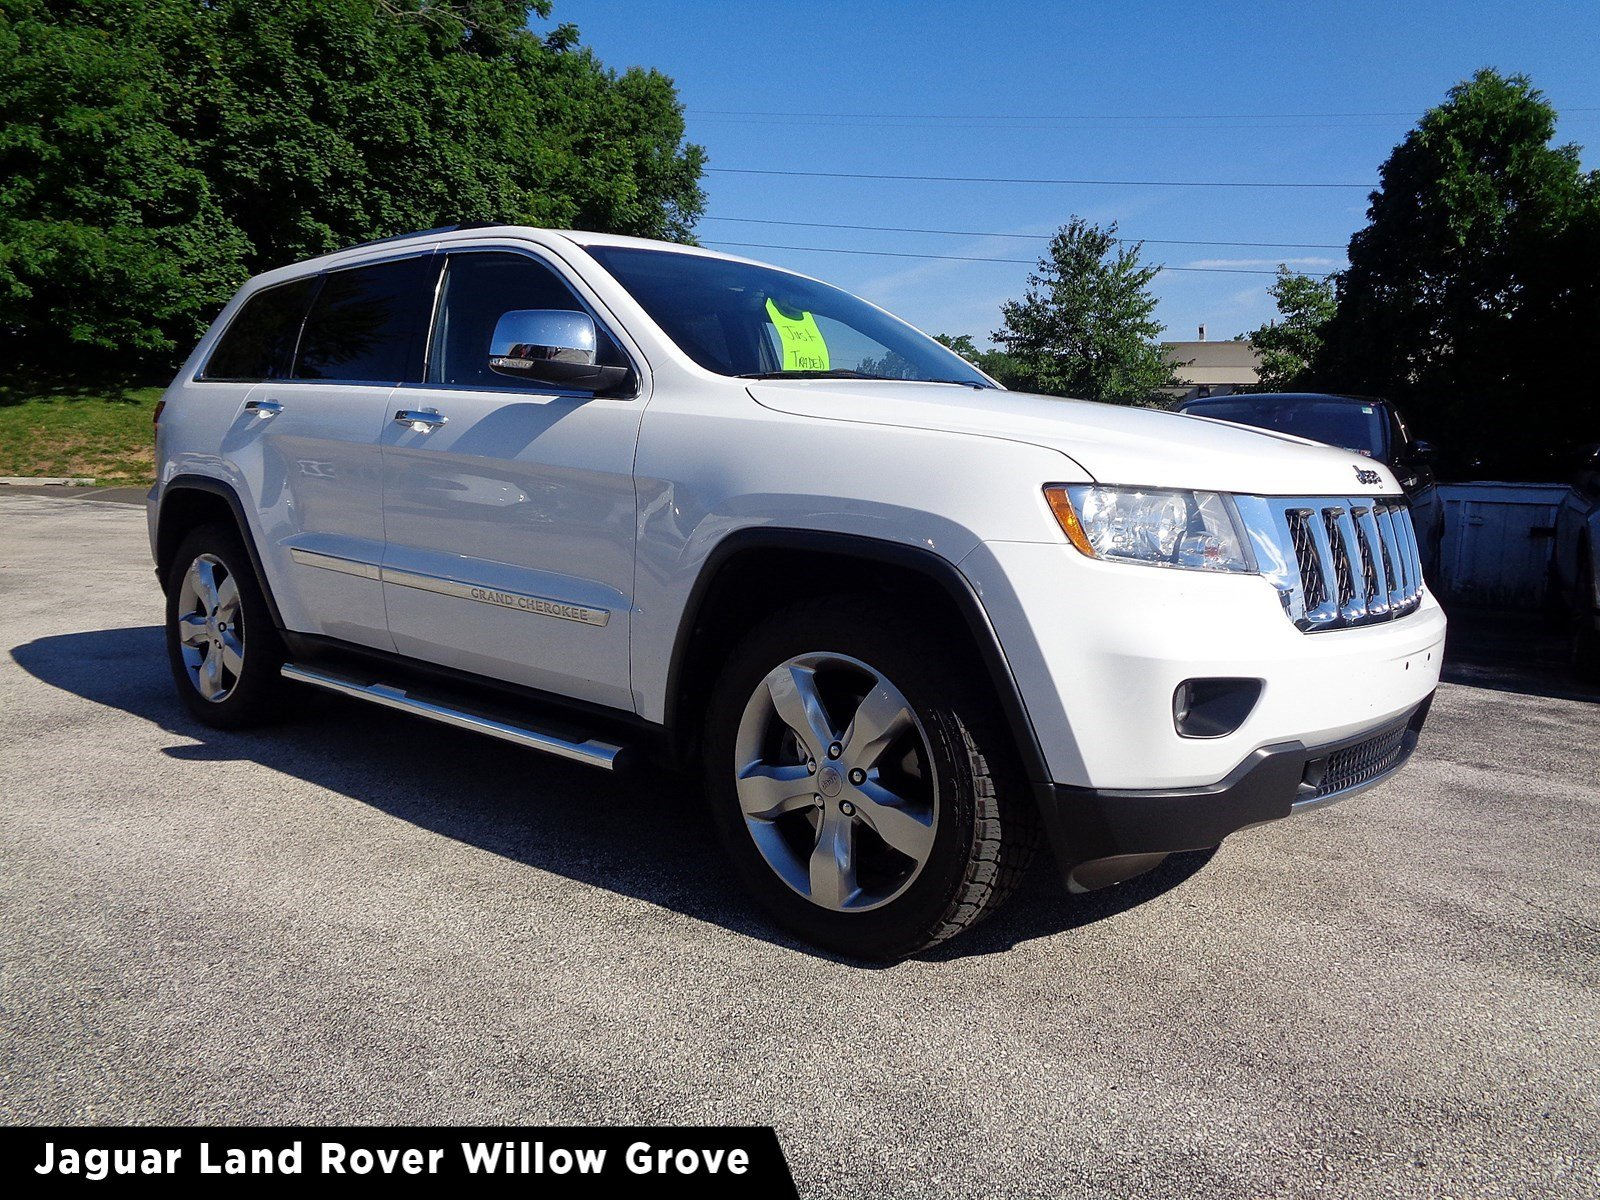 Used 2013 Jeep Grand Cherokee Overland For Sale in Ardmore, PA | VIN#  1C4RJFCT8DC523770